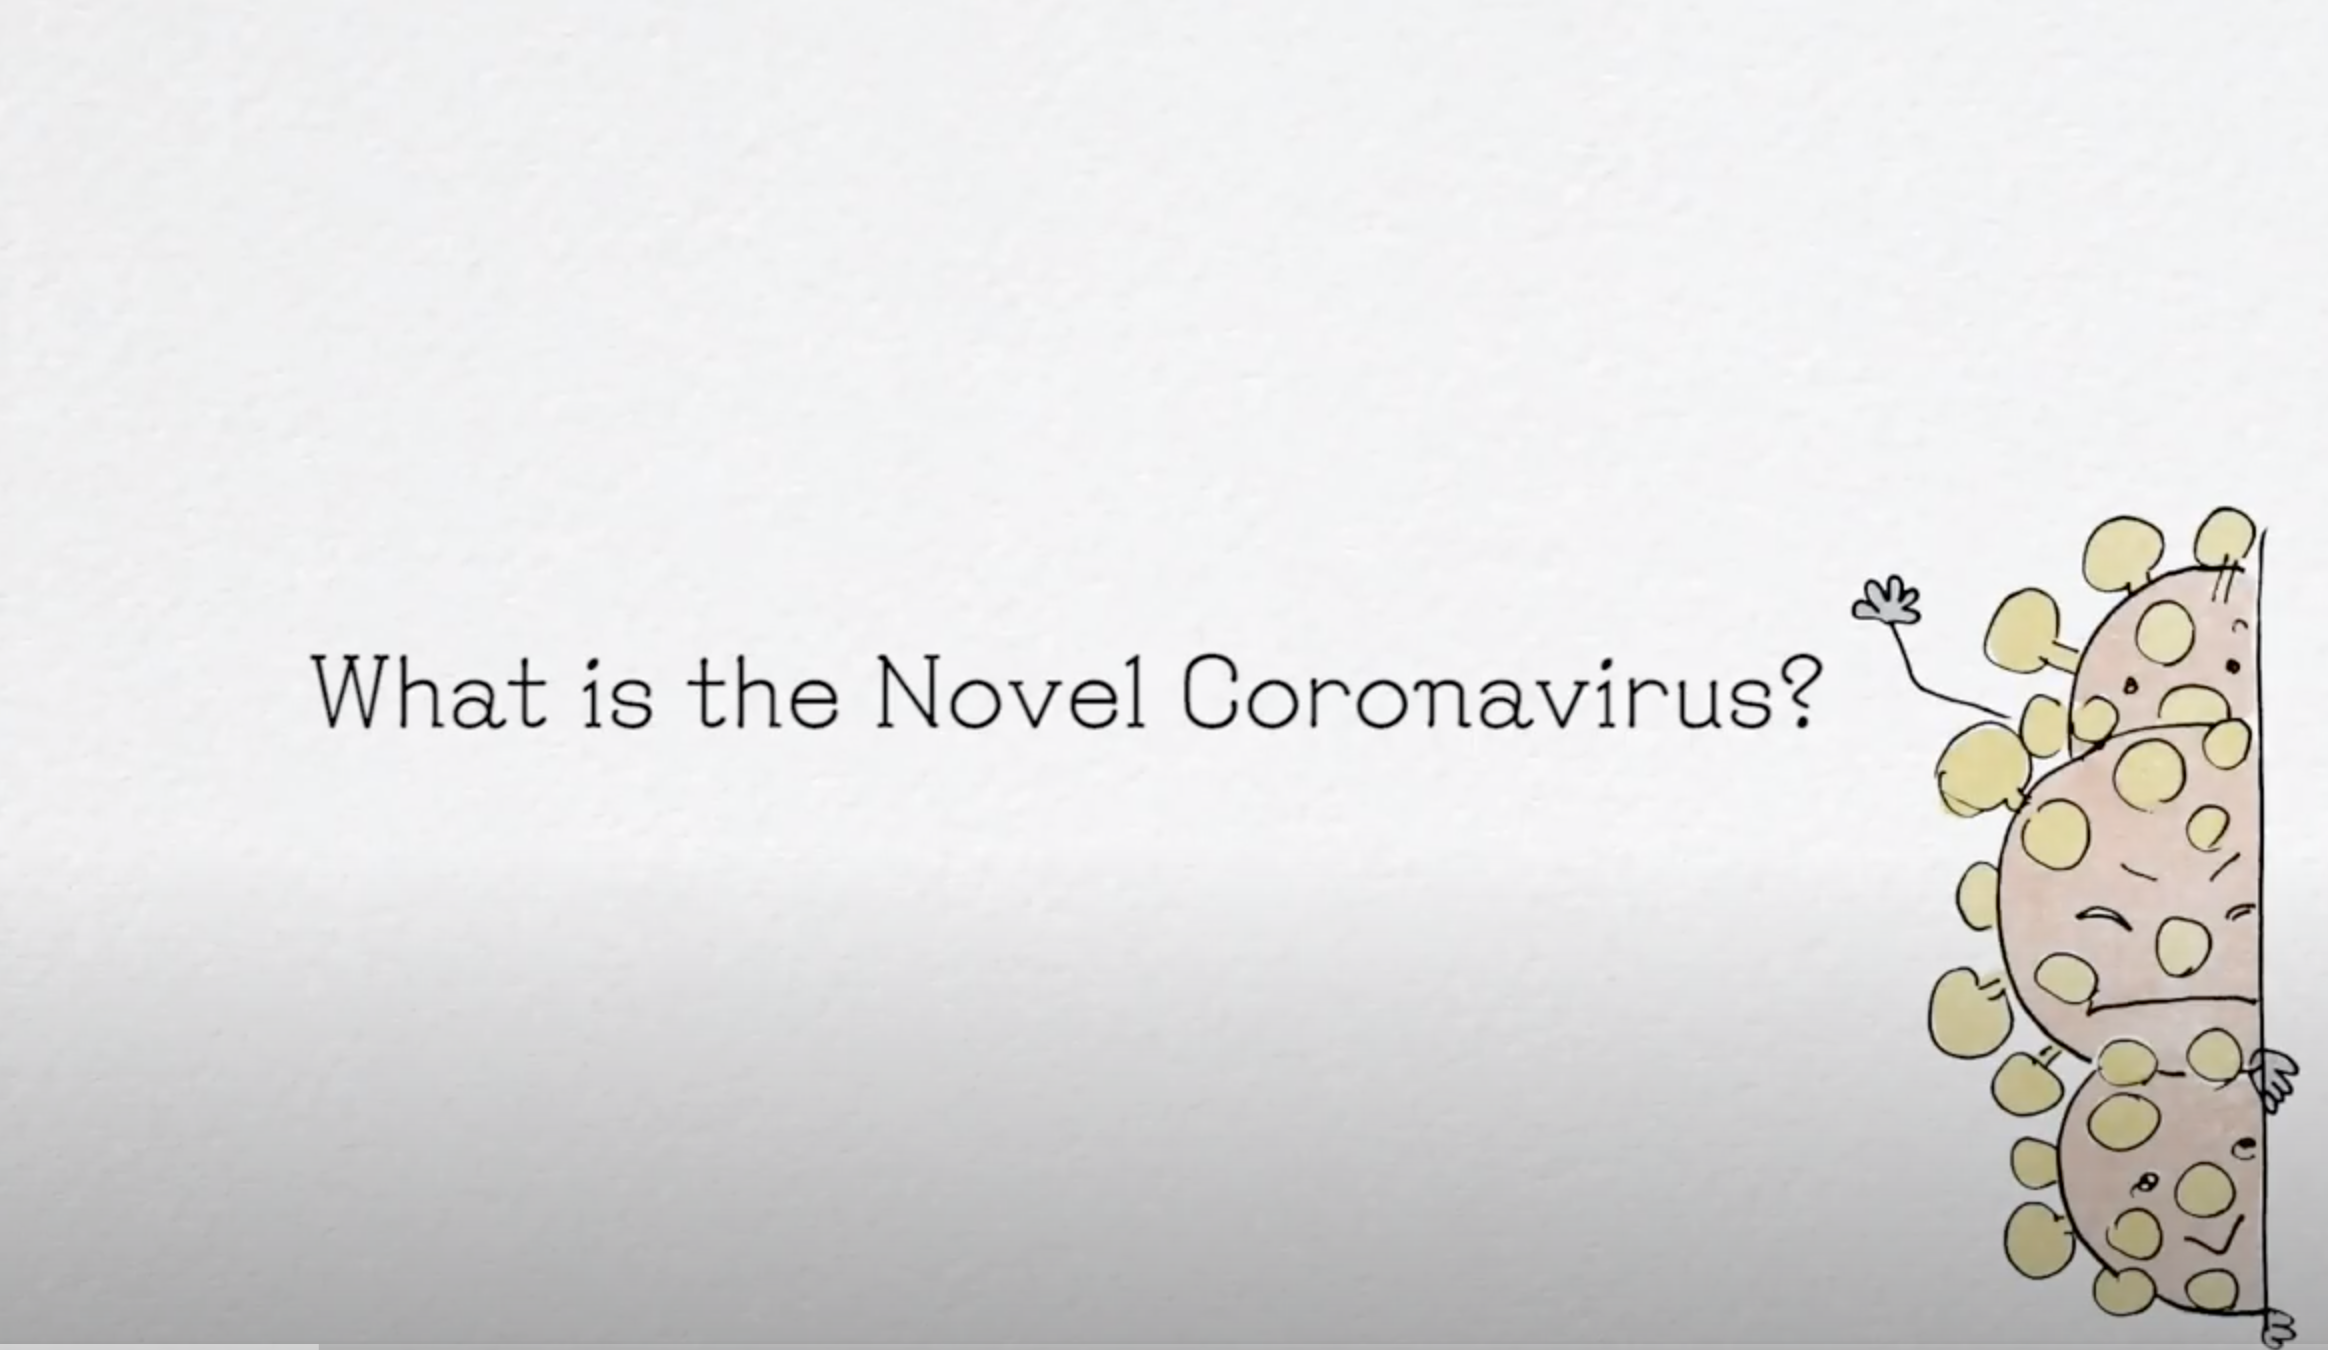 What is the Novel Coronavirus?